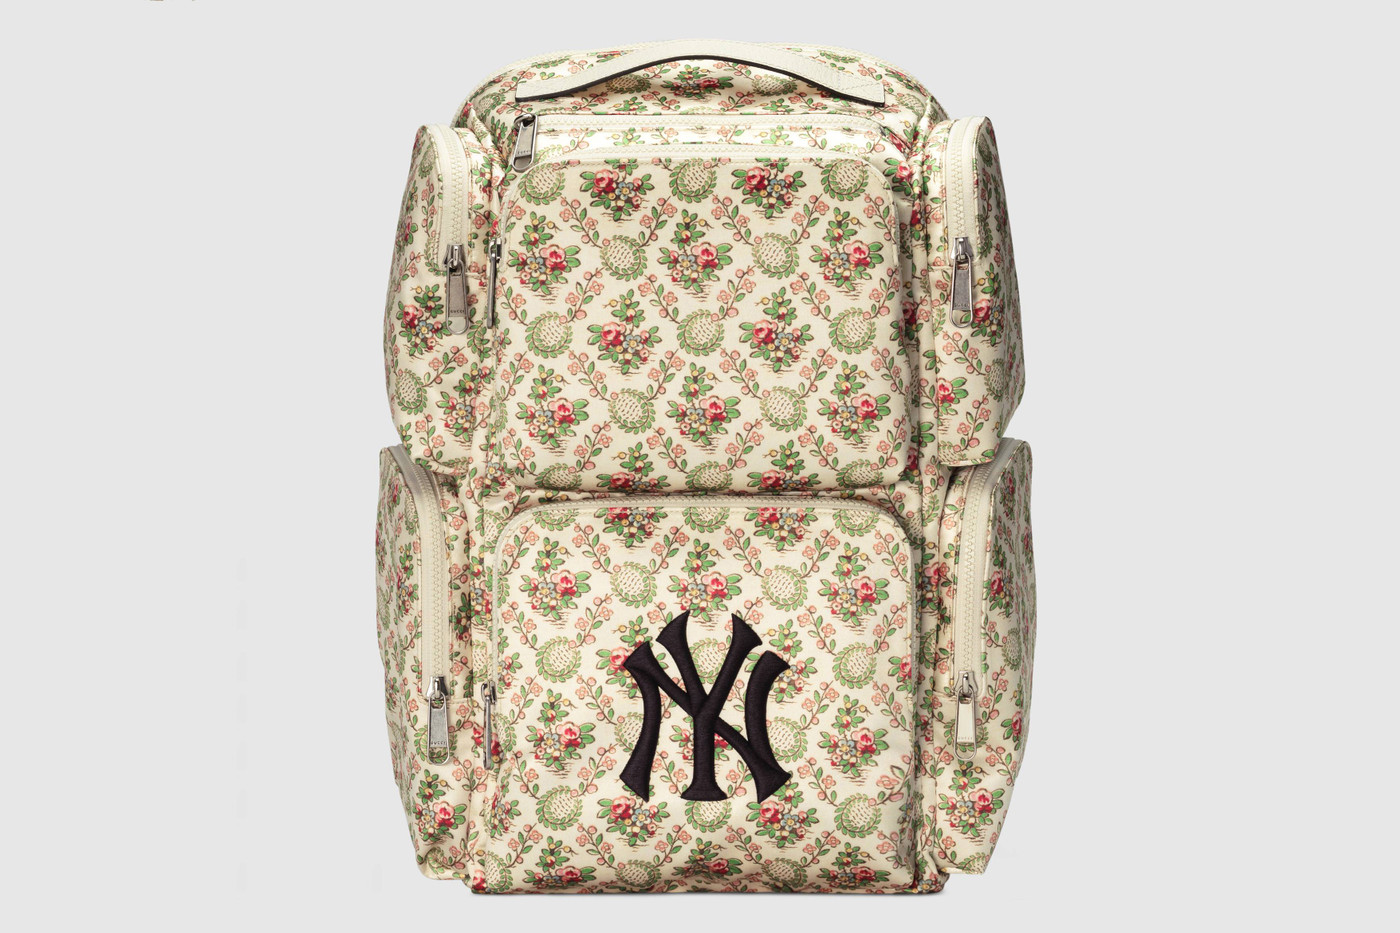 1505cef3e3d38 The love for the Yanks traces back to Gucci creative director Alessandro  Michele s signature Yankees cap that he personally owns. The collection  includes ...